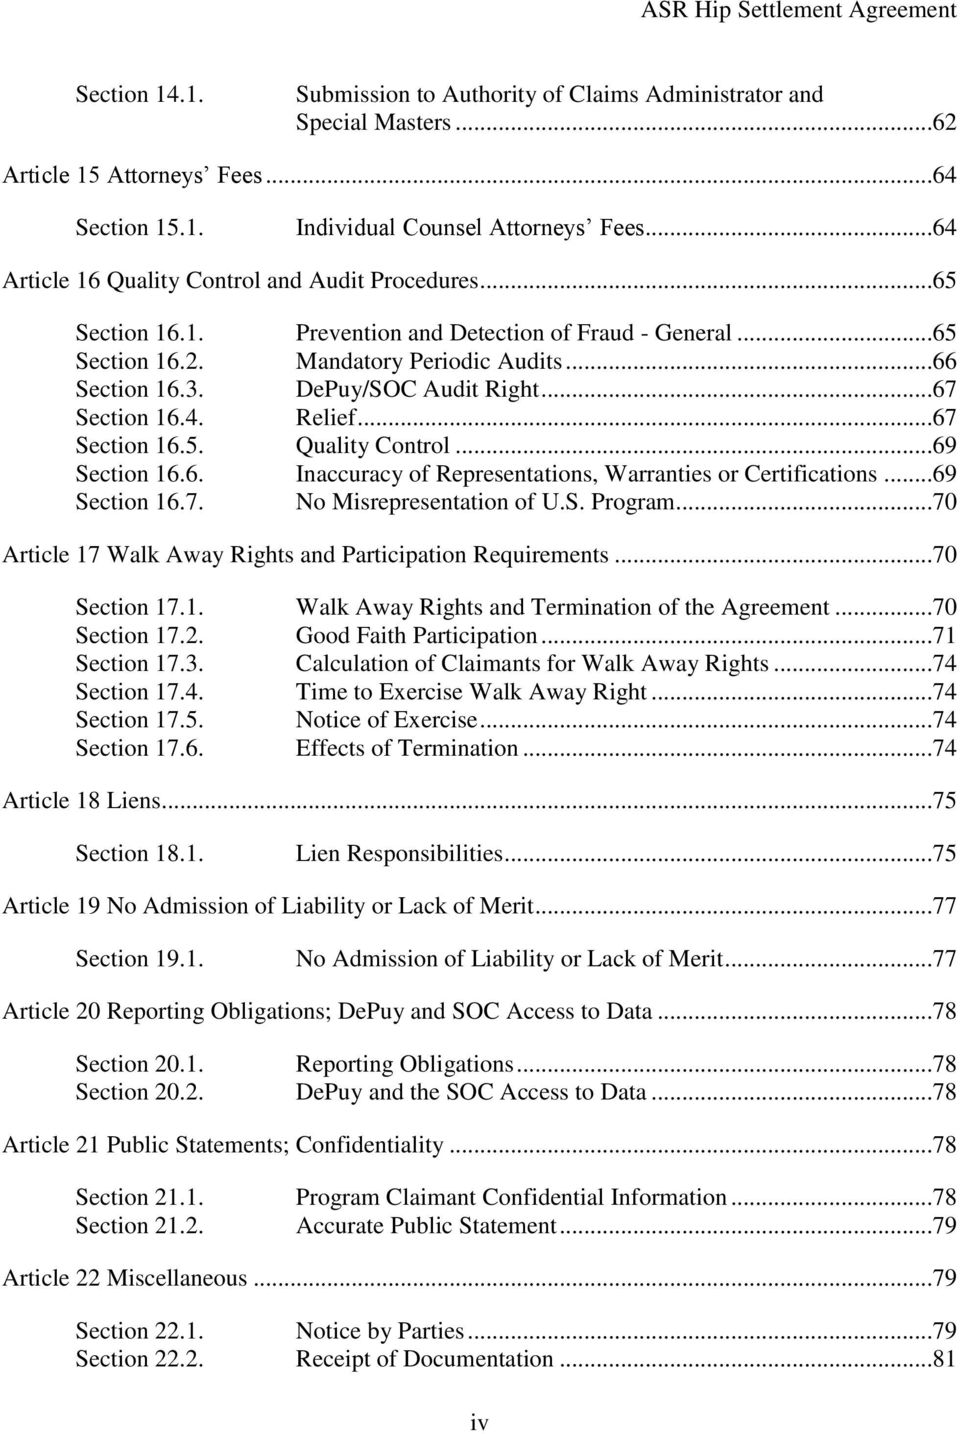 DePuy/SOC Audit Right...67 Section 16.4. Relief...67 Section 16.5. Quality Control...69 Section 16.6. Inaccuracy of Representations, Warranties or Certifications...69 Section 16.7. No Misrepresentation of U.